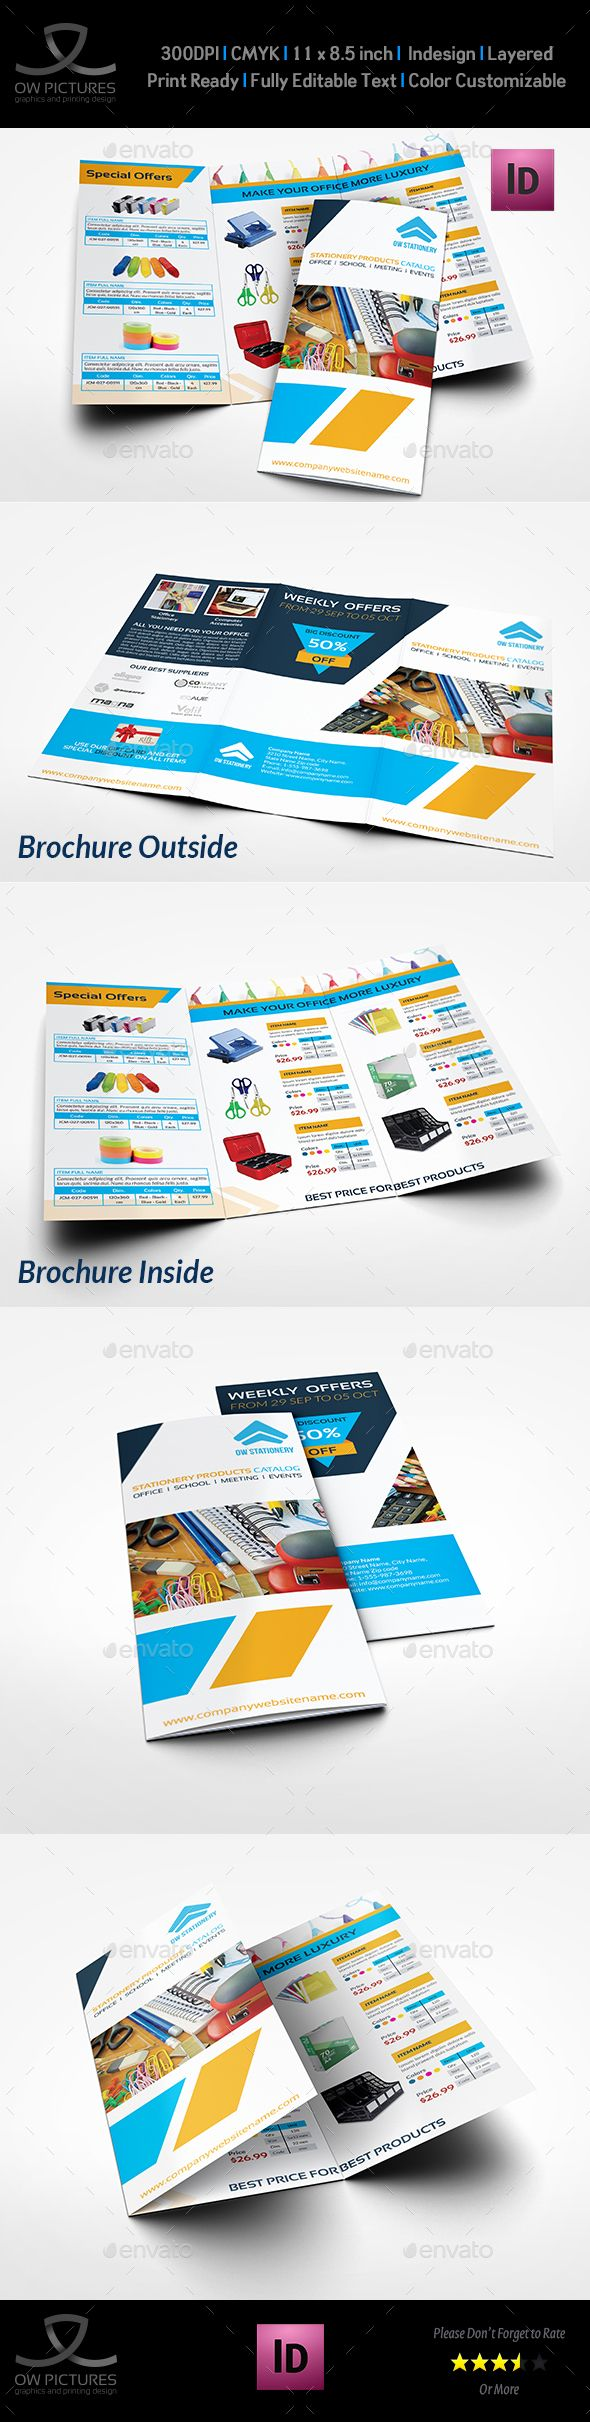 Generous 1 Page Website Template Tiny 1 Week Calendar Template Solid 10 Envelope Template 2 Circle Label Template Old 2 Page Resume Format Header Blue20 Piece Puzzle Template 25  Best Ideas About Tri Fold Brochure Template On Pinterest | Tri ..